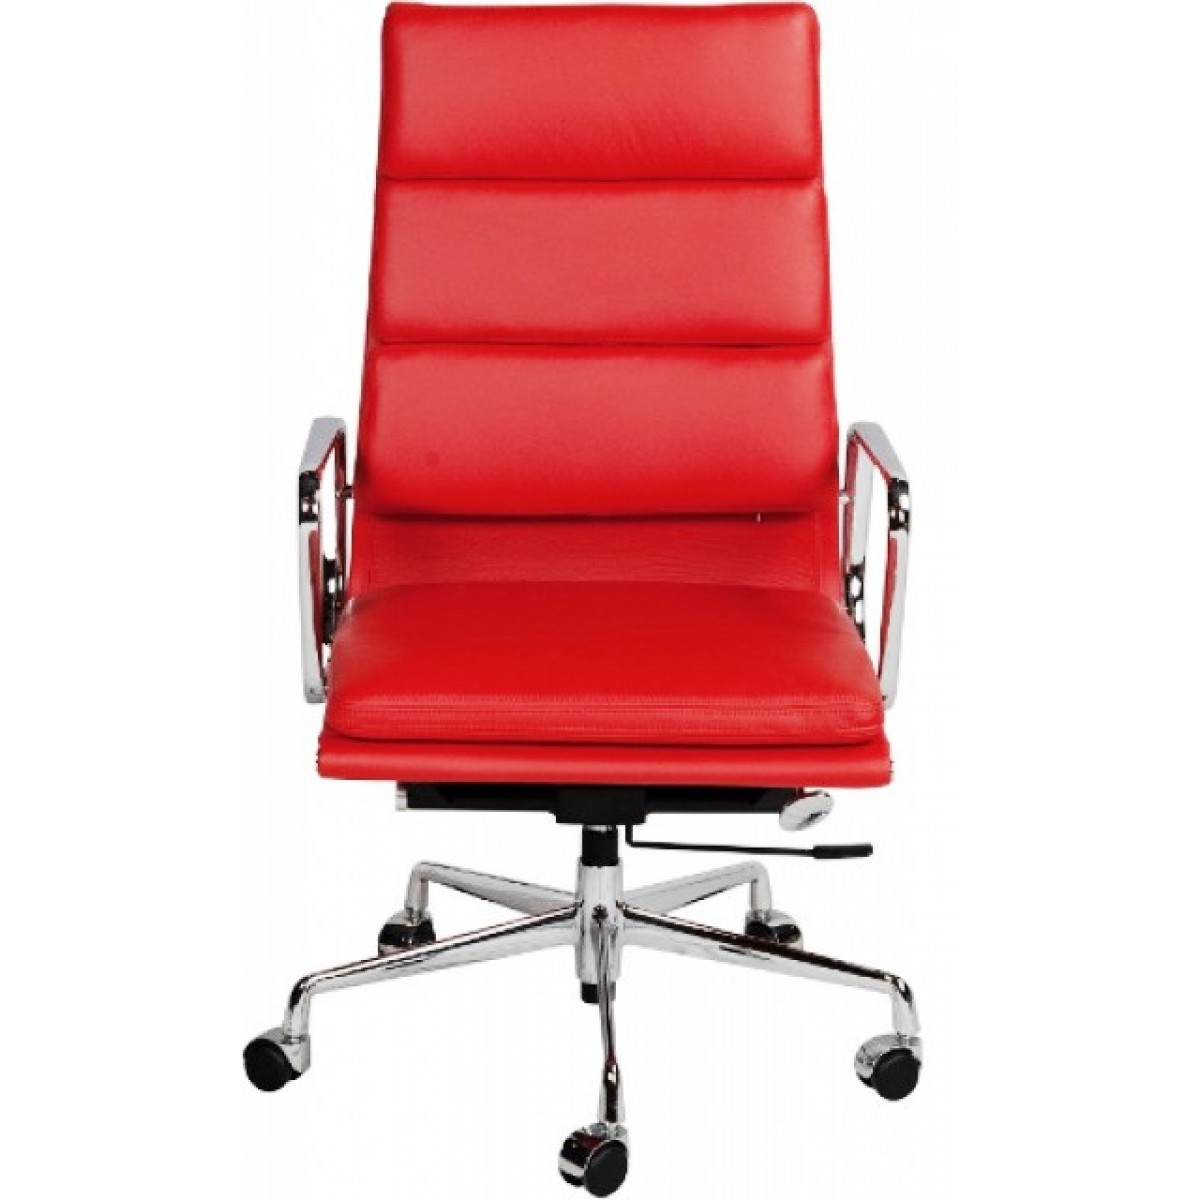 Ea219 Eames Style Office Chair High Back Soft Pad Red